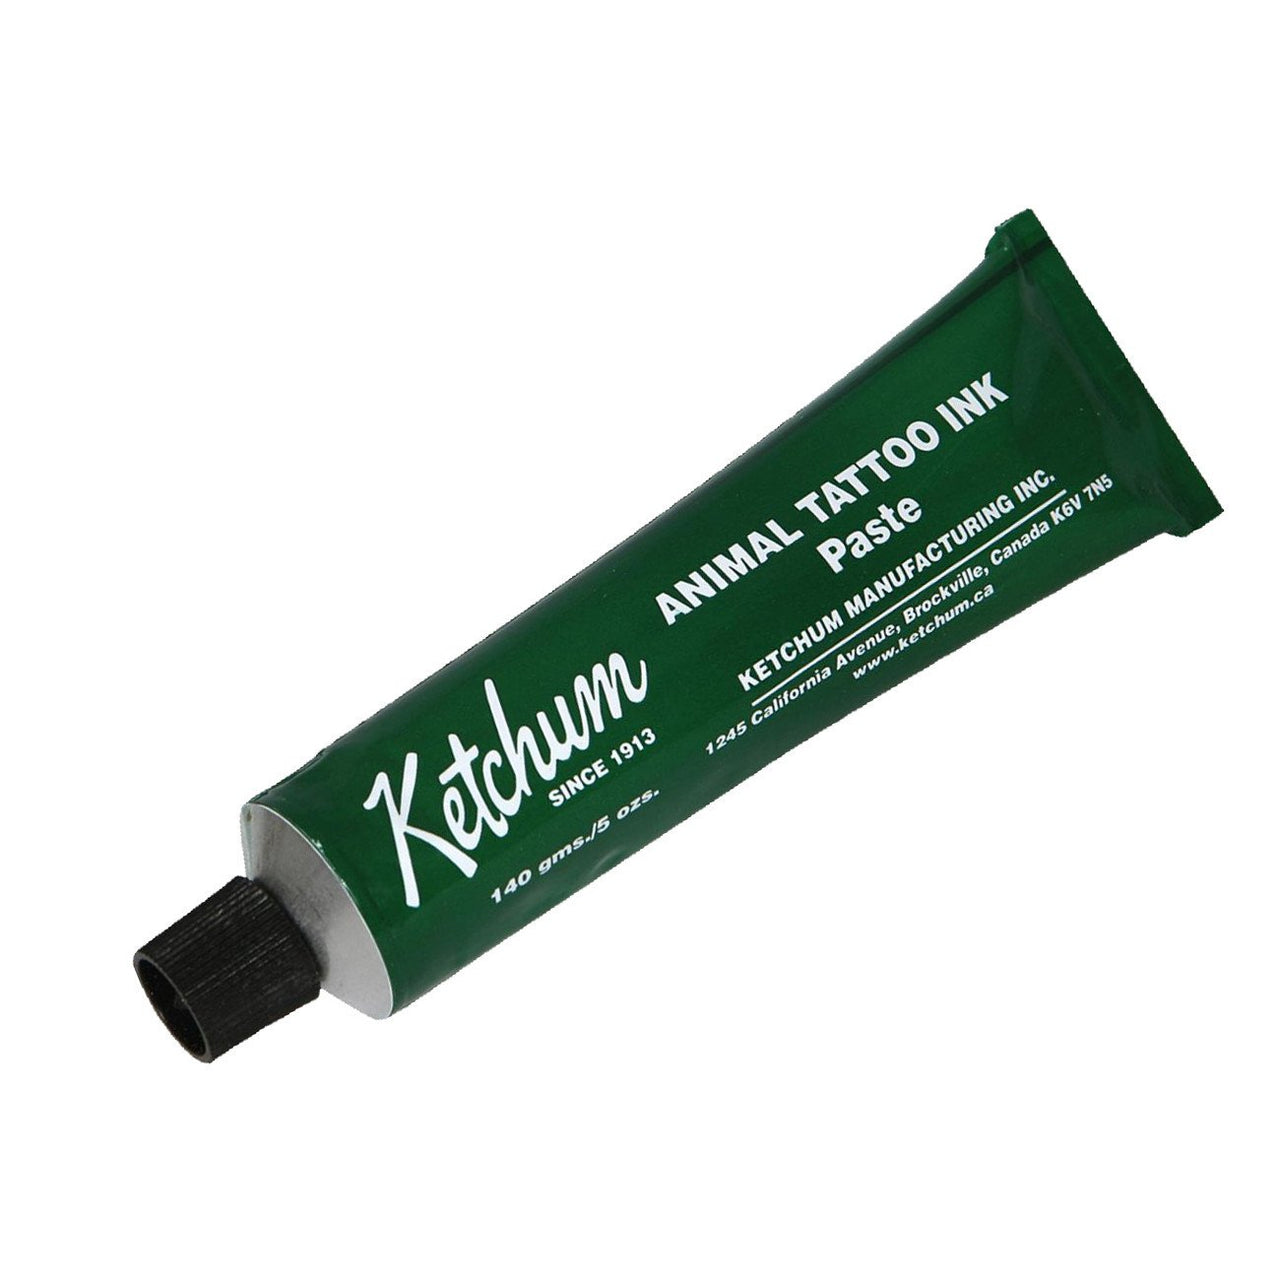 Ketchum Tattoo Green Paste 140Gm (5Oz) Tube - Animal Marking Ketchum - Canada